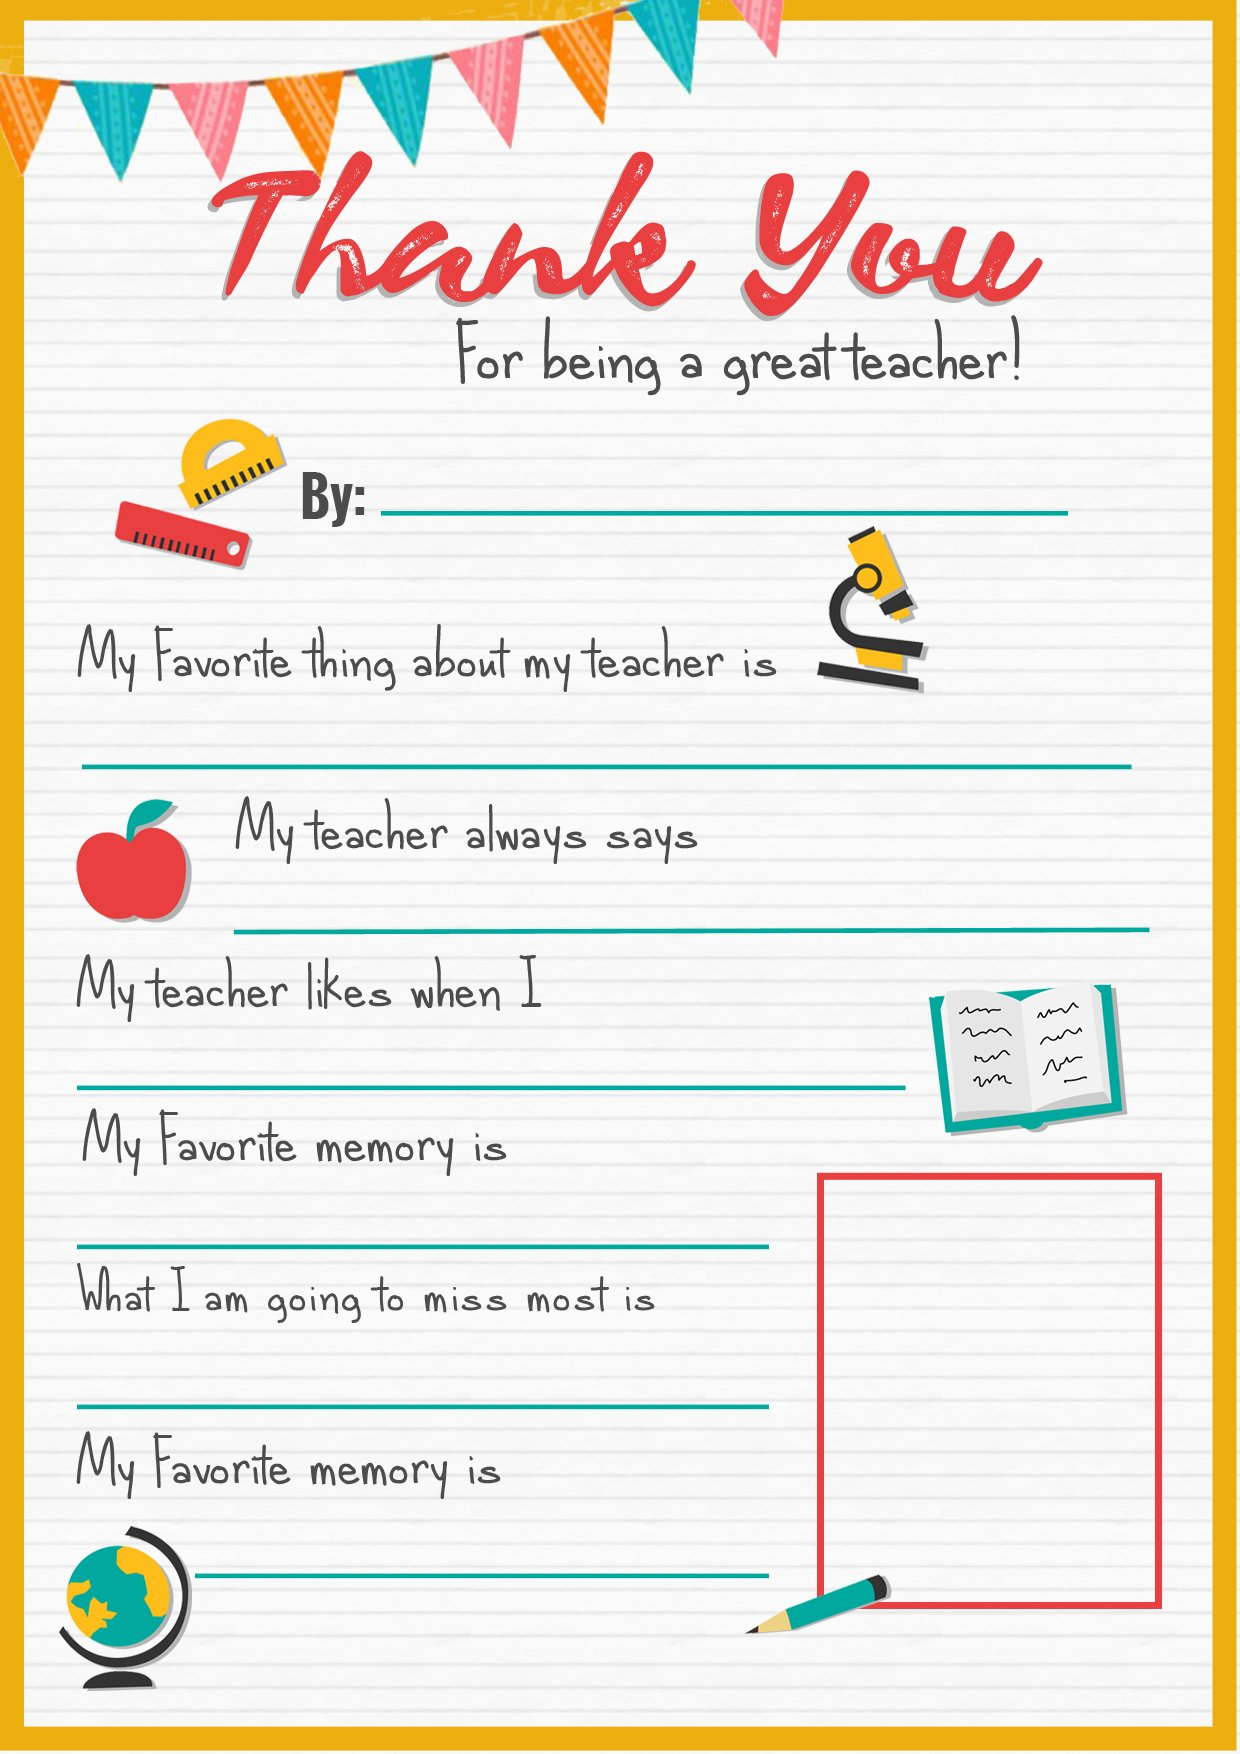 Epic image with regard to printable thank you cards for teachers